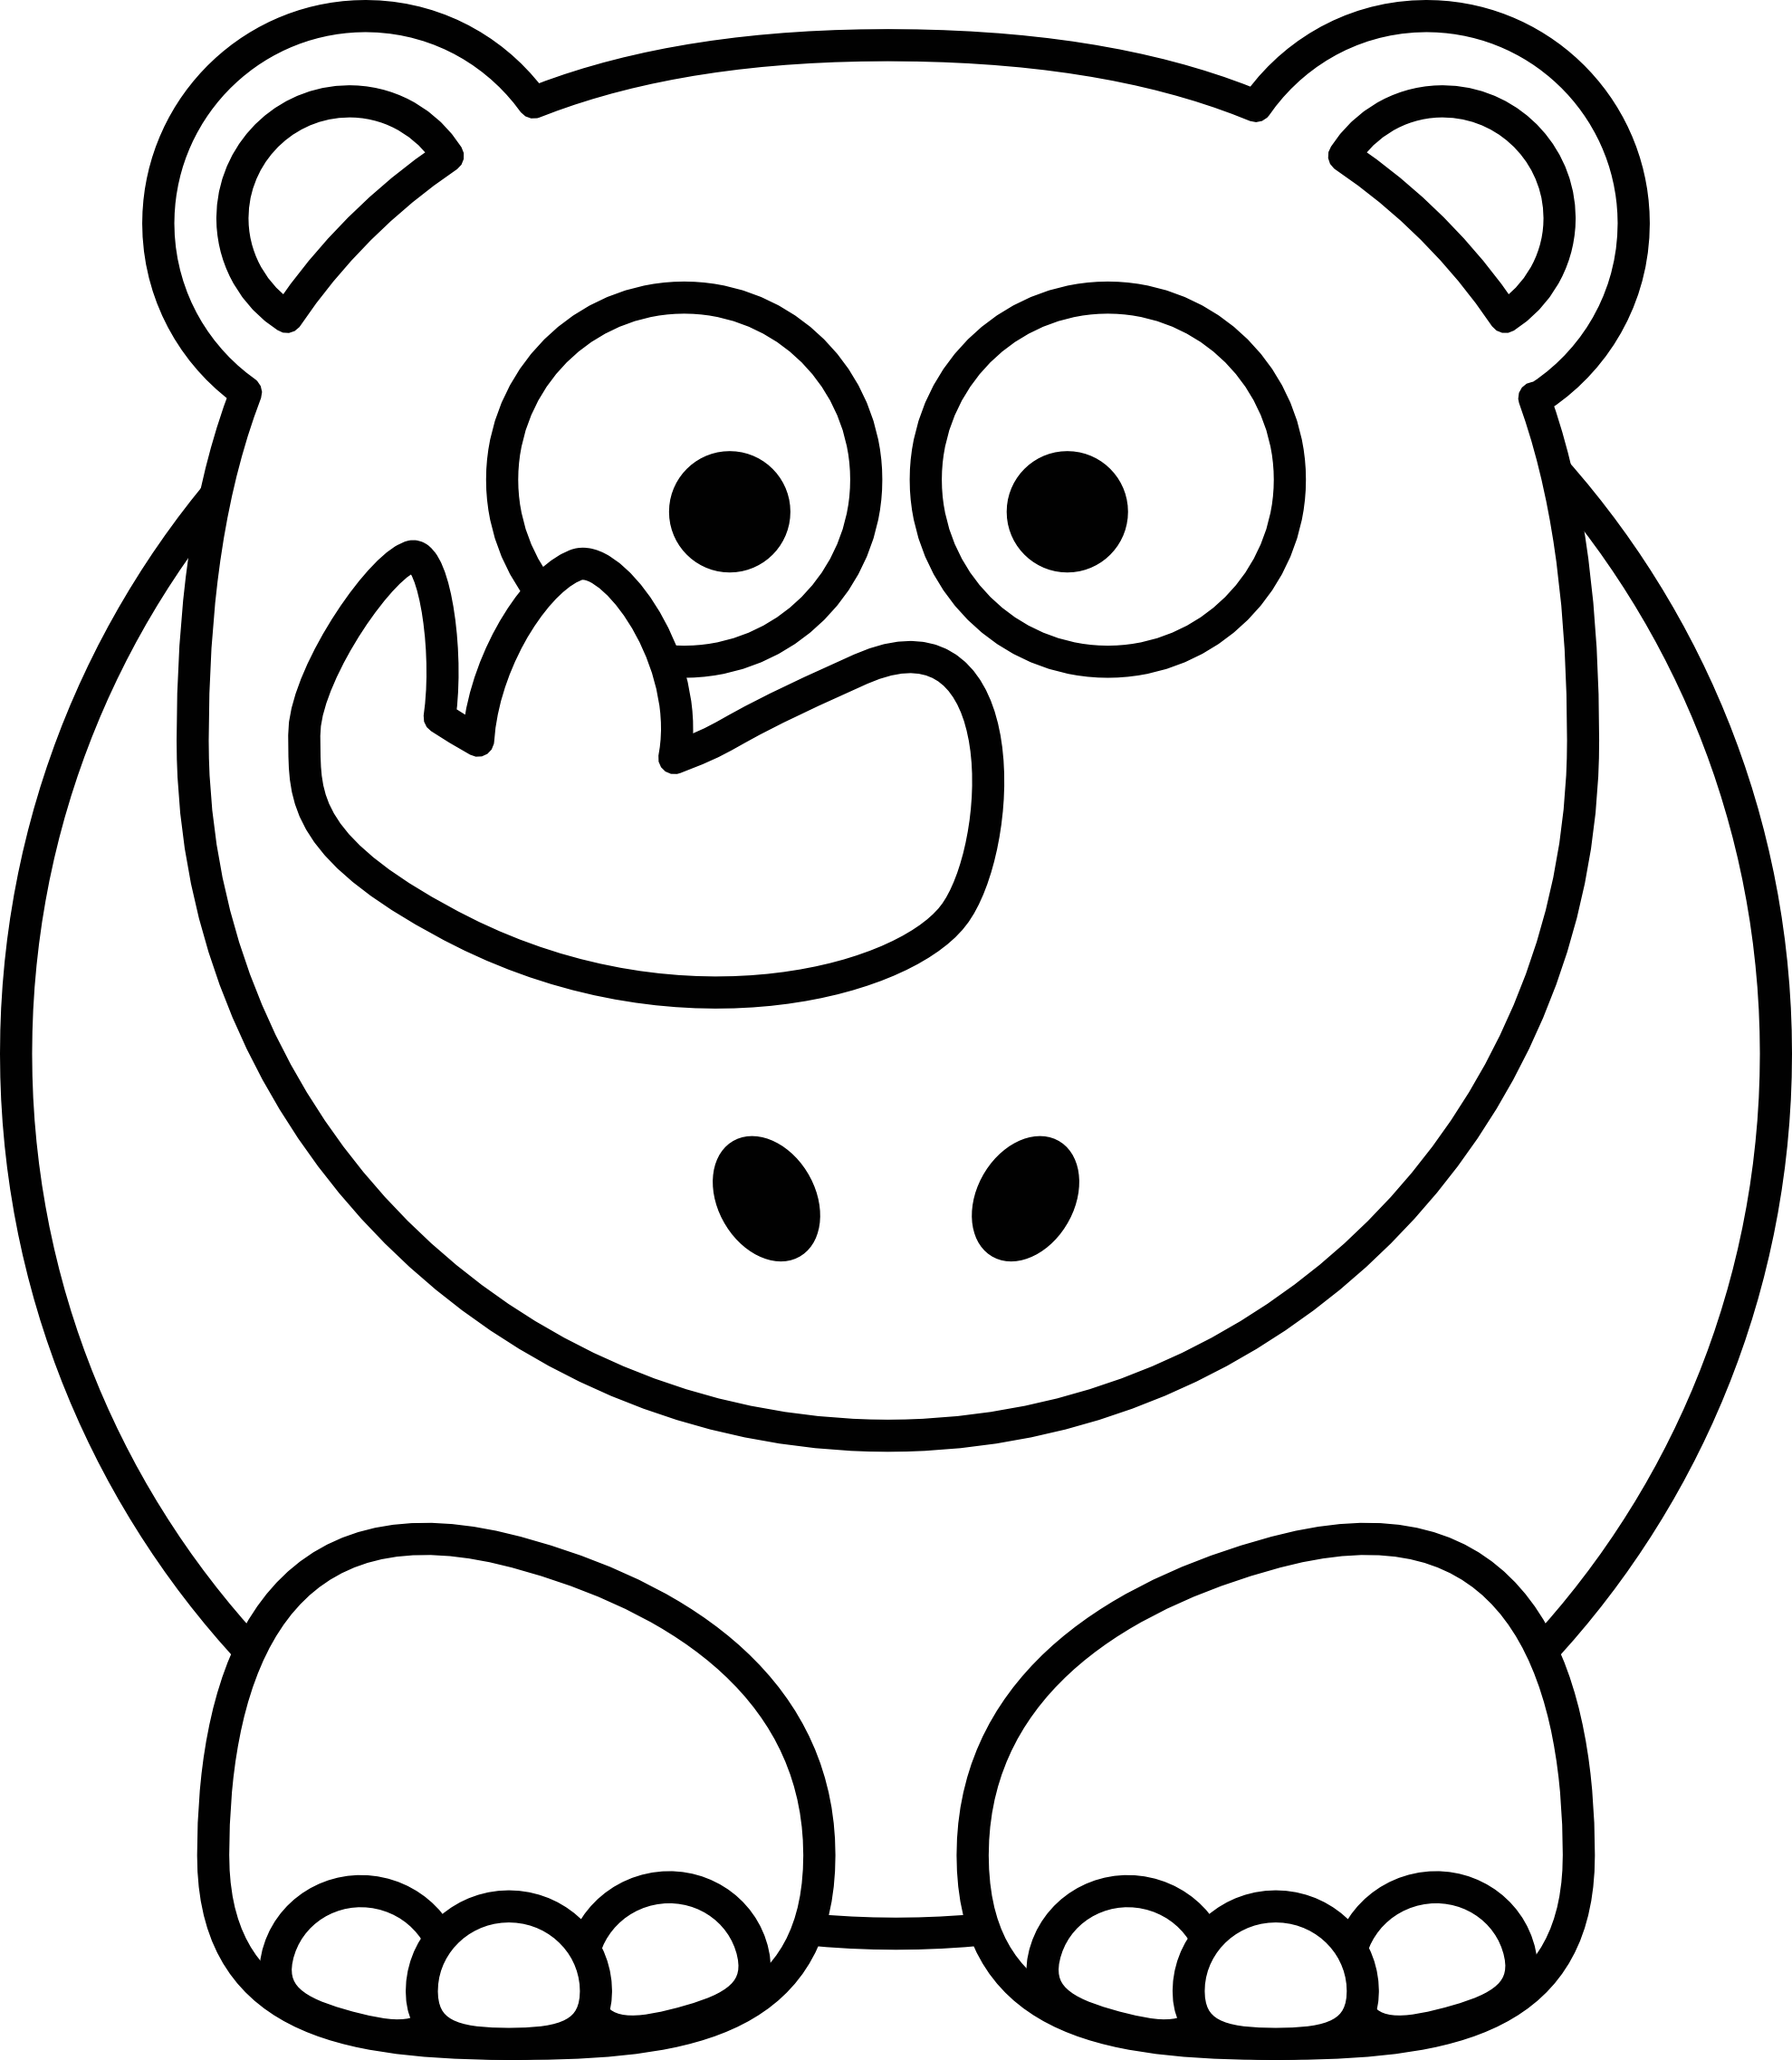 png freeuse library Clip art rhino panda. Black and white clipart moon